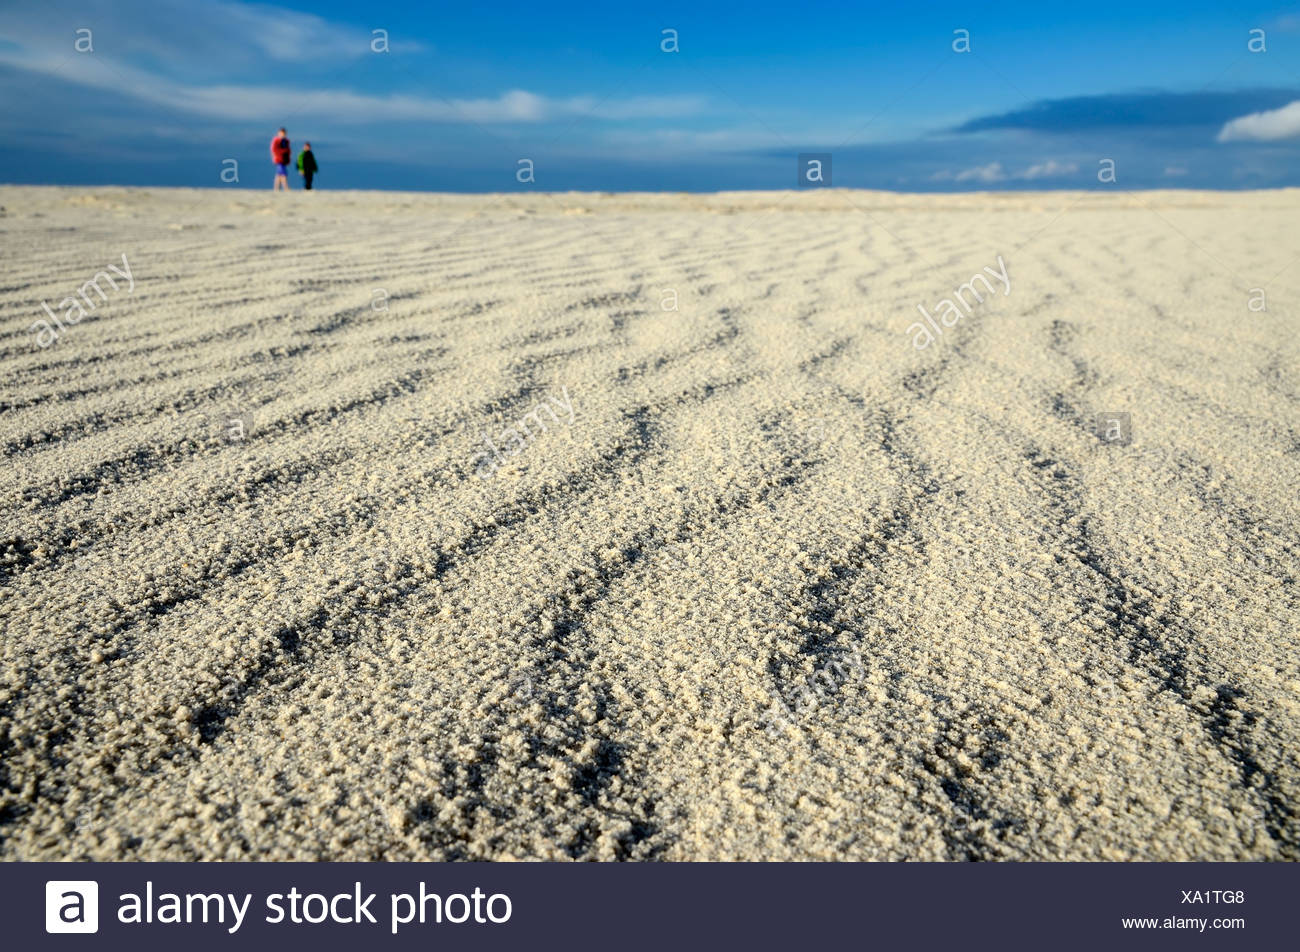 People walking in the vastness of the Kniepsand beach, Amrum Island, Nordfriesland, North Frisia, Schleswig-Holstein - Stock Image